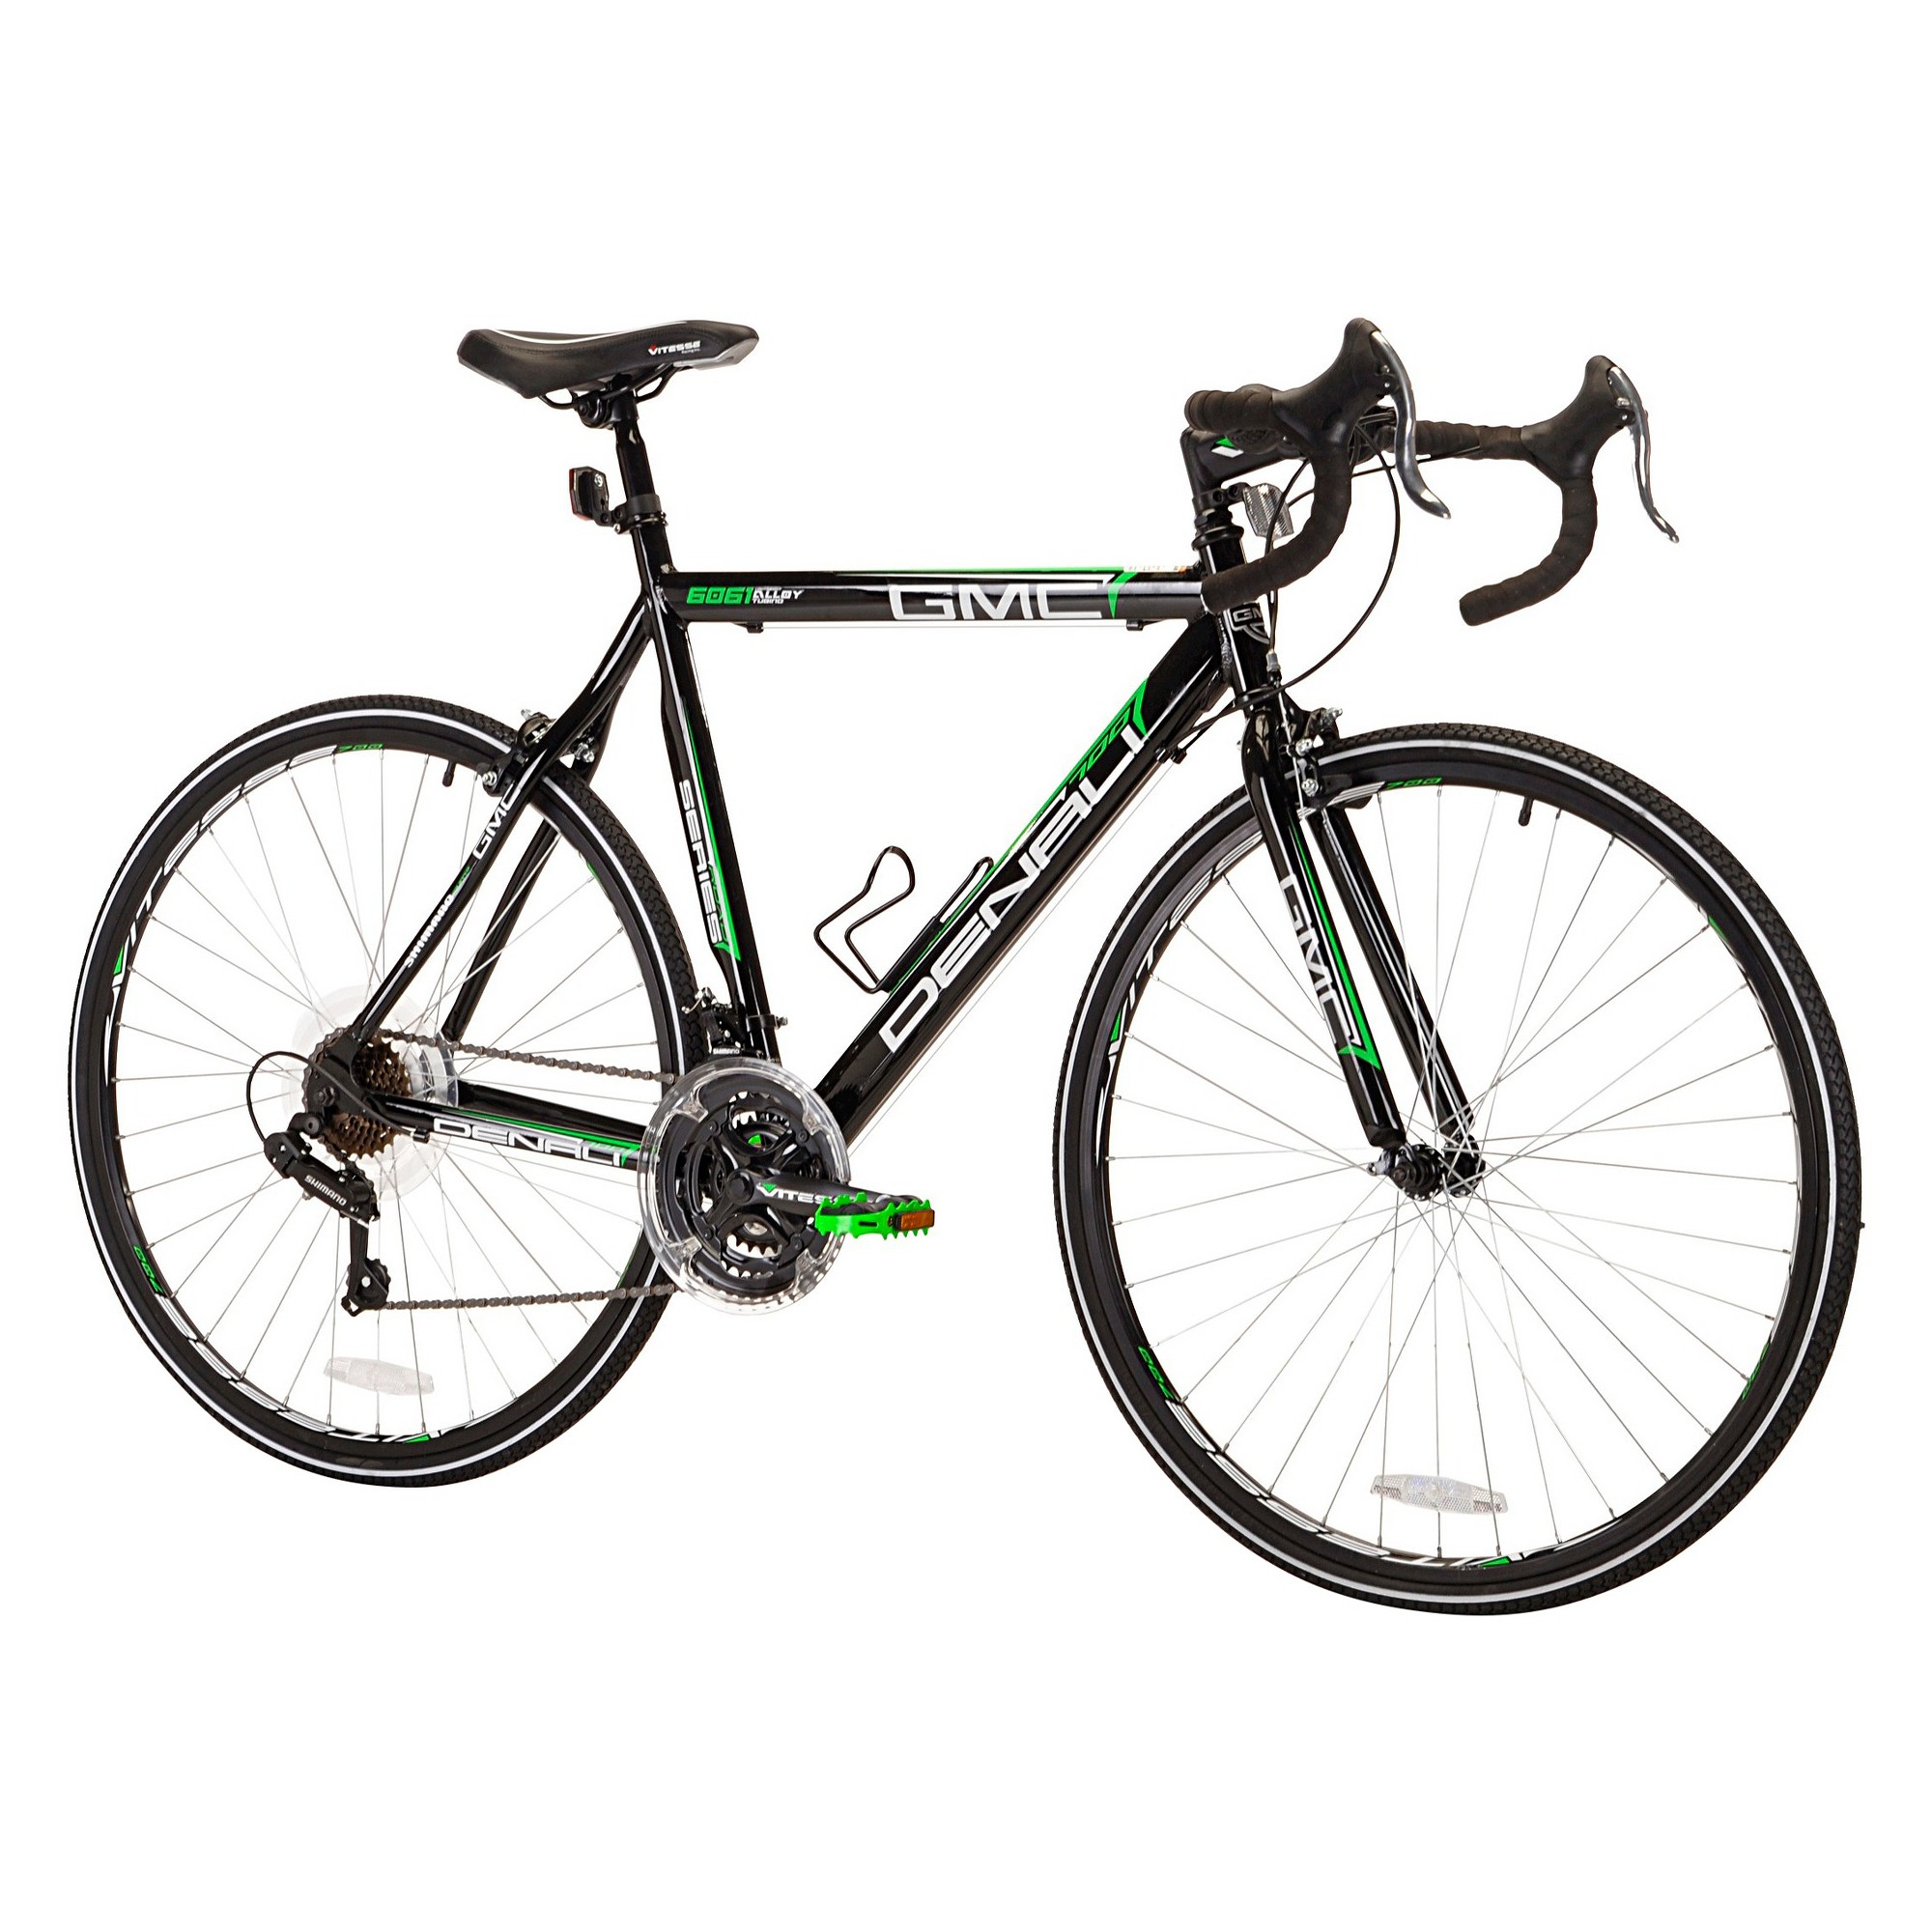 Gmc Men S Denali 700c Road Bike 22 Black Green Adult Unisex Green Black Road Bike Gmc Denali Bike Reviews